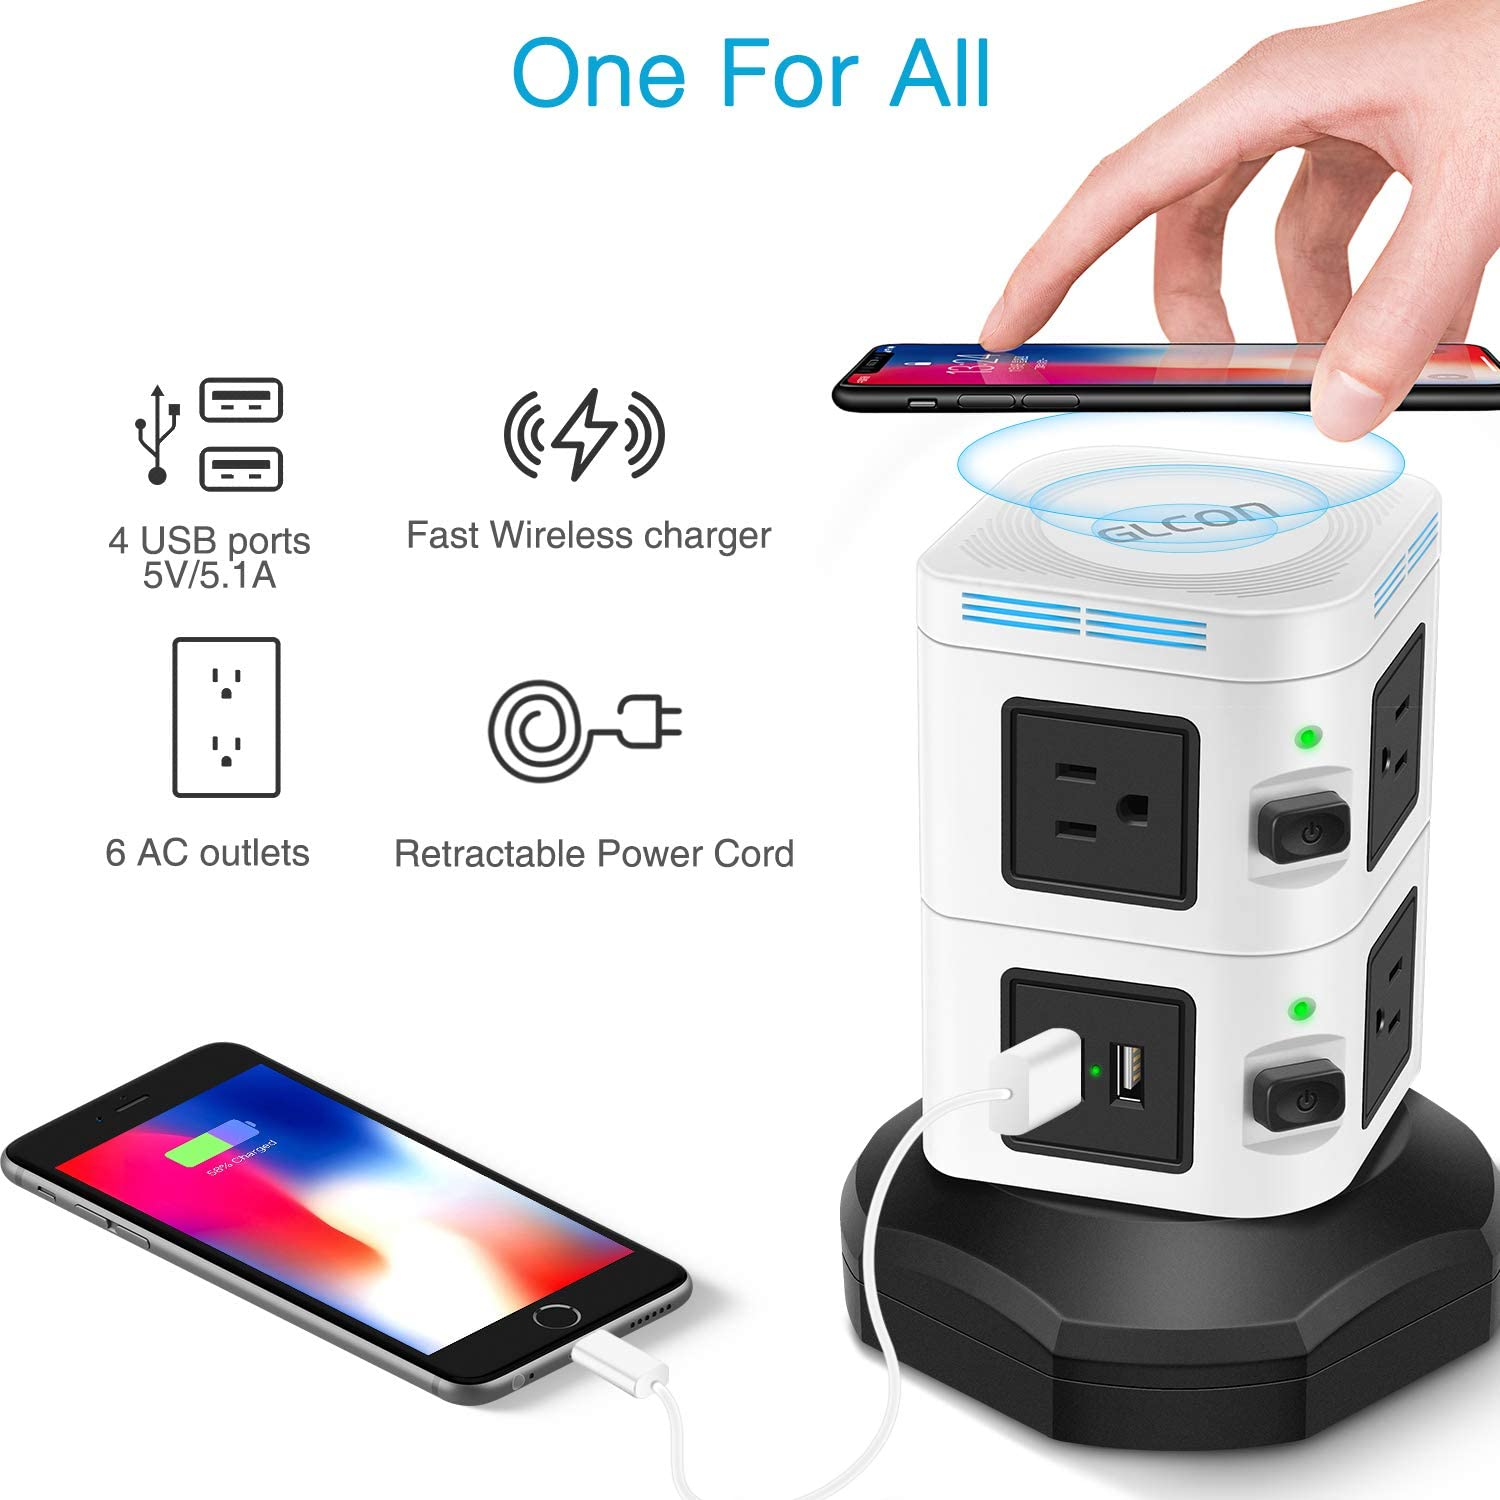 Power Strip Tower Wireless Charger - GLCON Surge Protector Electric Charging Station 3000W 13A 6 Outlet Plugs 4 USB Ports + 6ft Extension Cord Universal Socket PC Laptops Phone